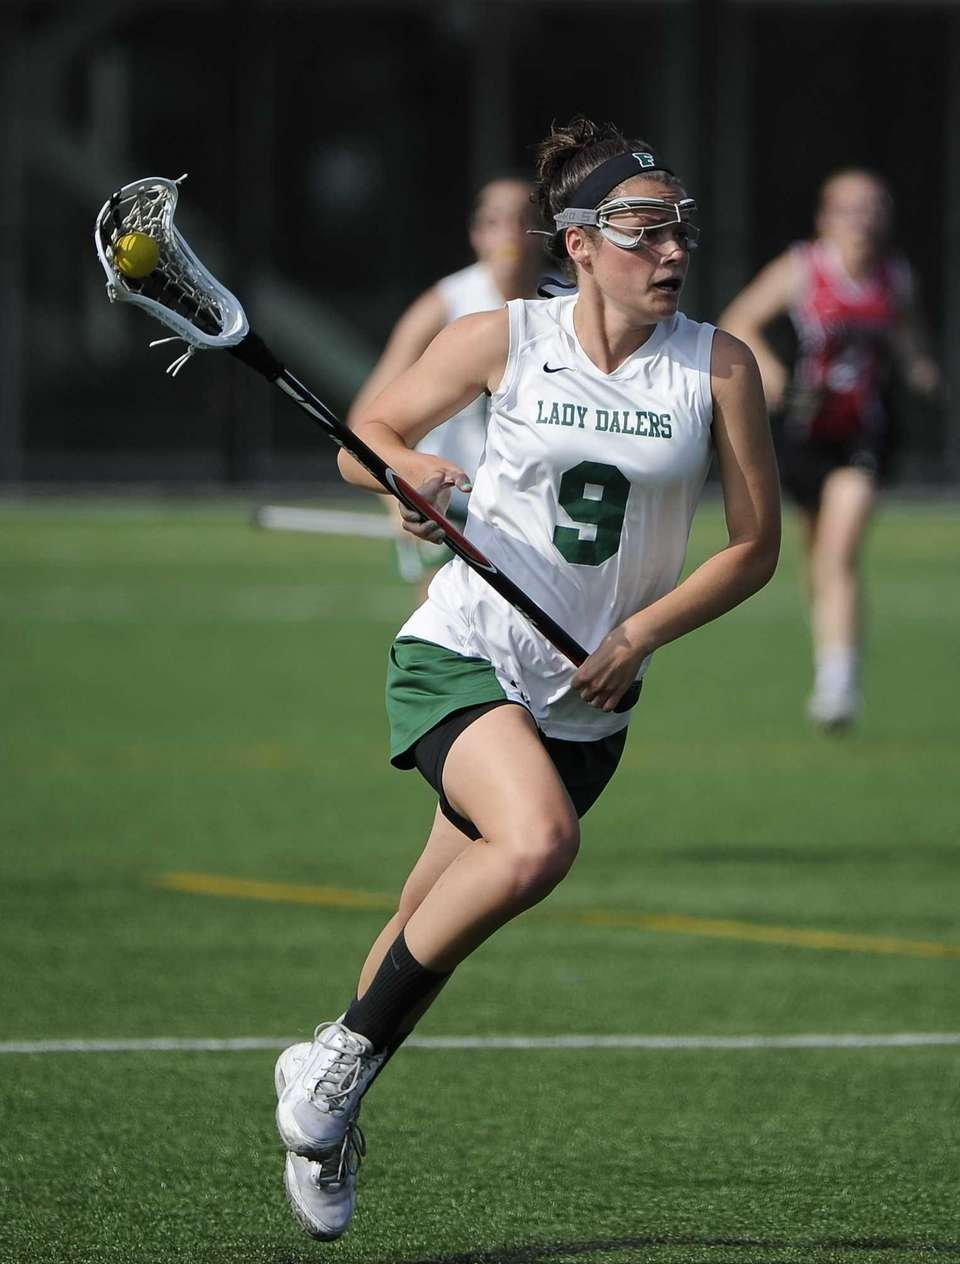 Farmingdale attacker Brenna Weill drives the ball against